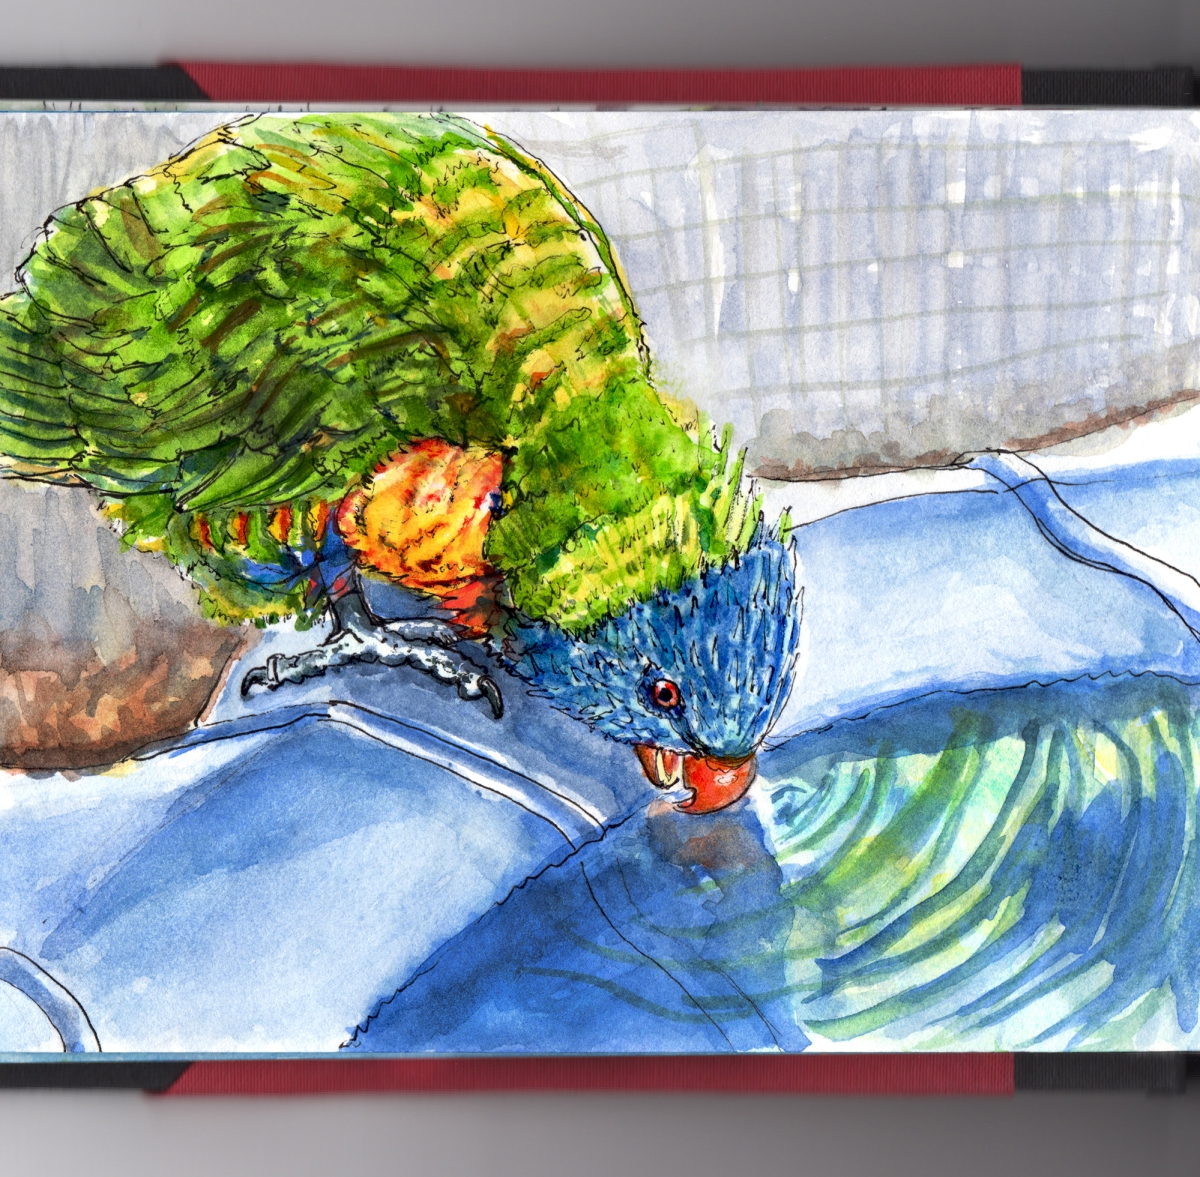 Day 13 - #WorldWatercolorGroup Rainbow Lorikeet Quick Sketch - #doodlewash